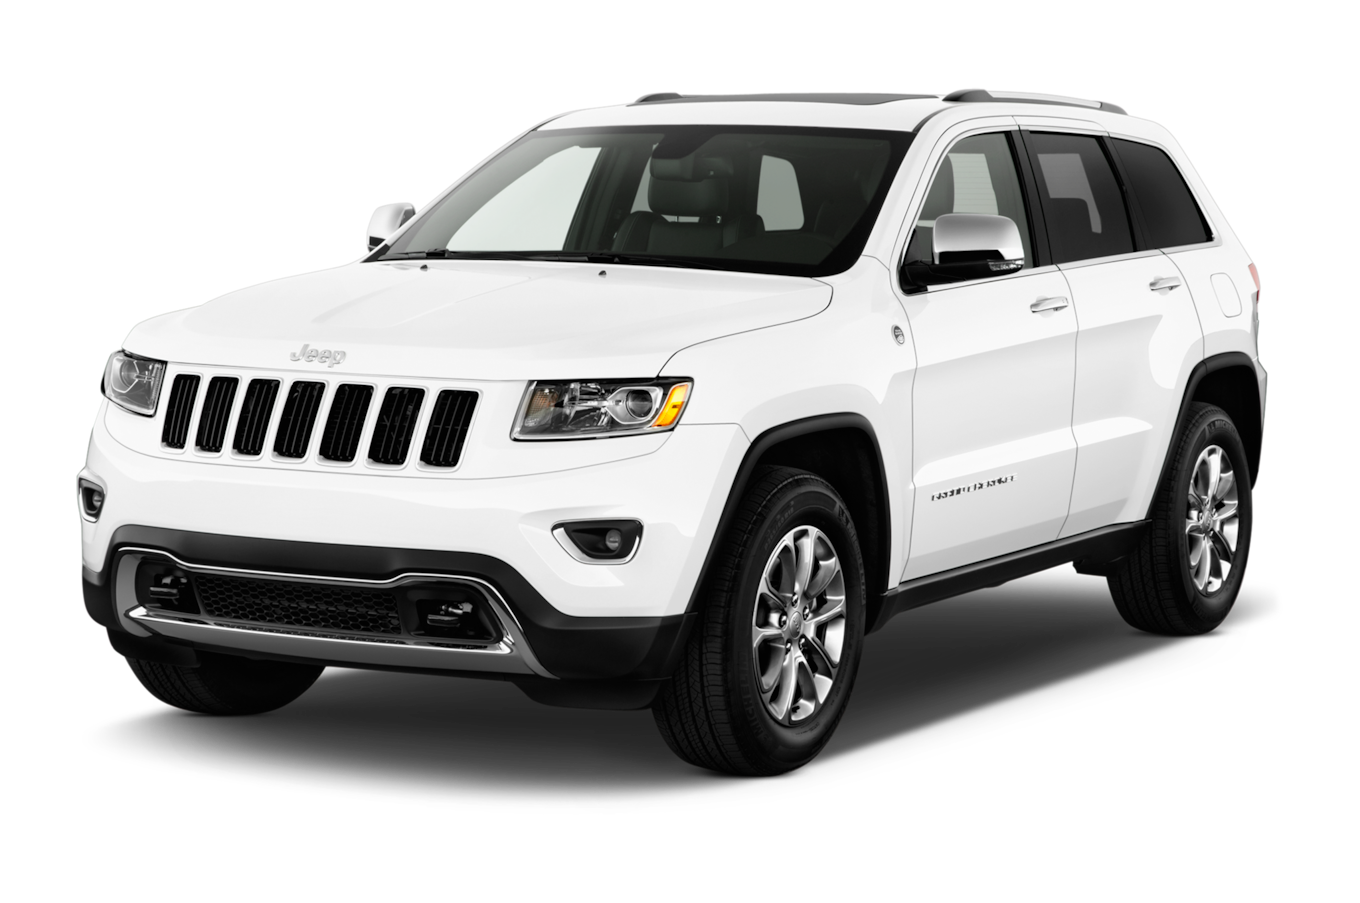 Image Result For 2015 Jeep Grand Cherokee Limited White With Images 2014 Jeep Grand Cherokee Jeep Grand Cherokee Jeep Grand Cherokee Laredo